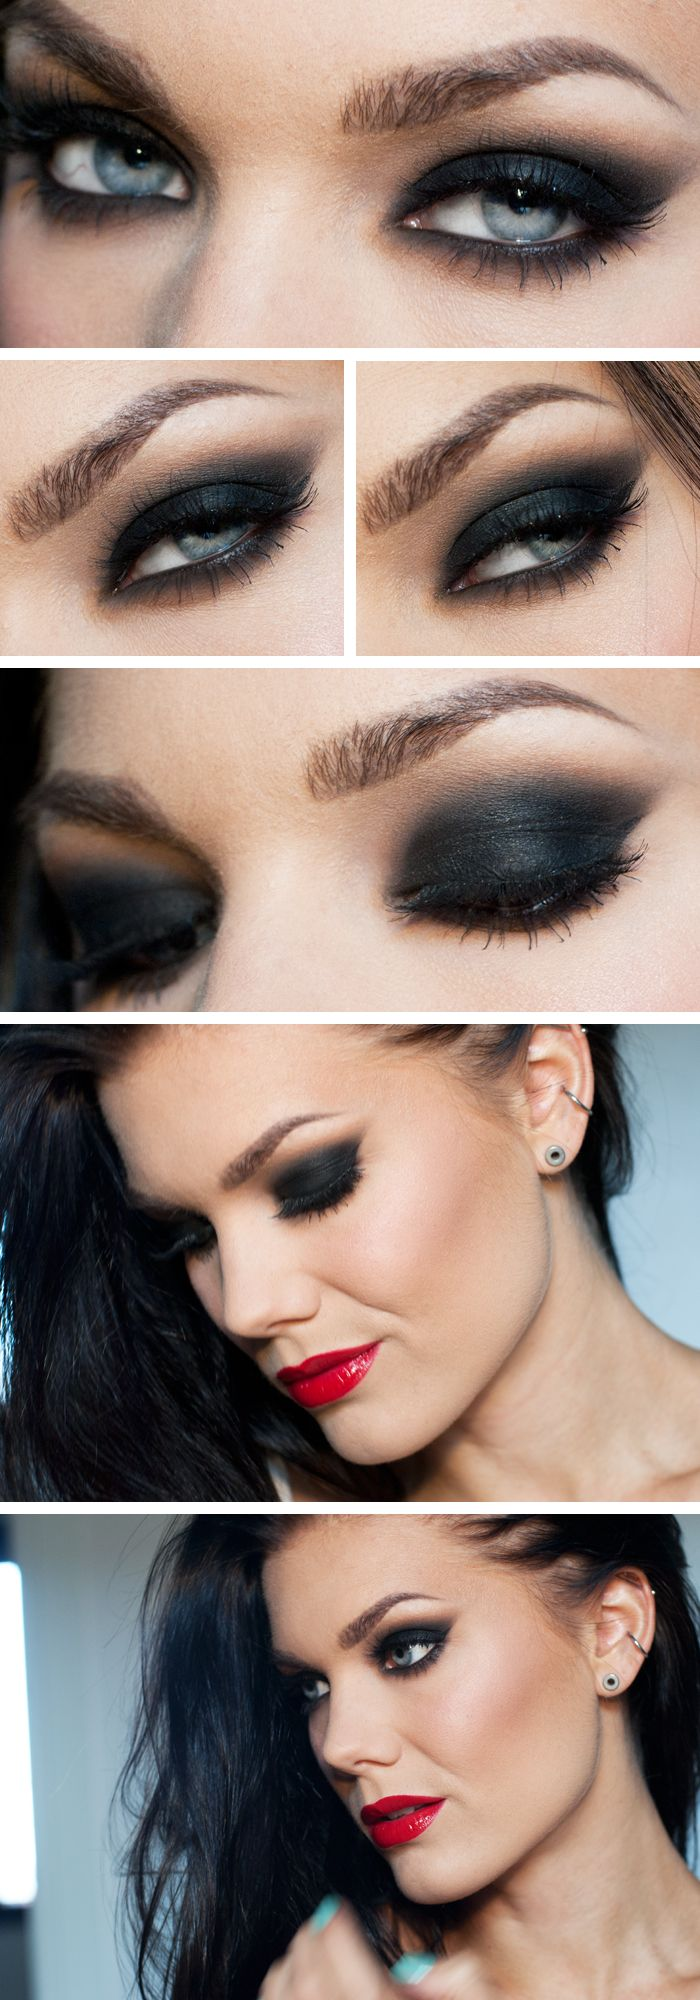 Best Smokey Eye Make-up Step By Step Tutorial and Ideas with Pictures (14)